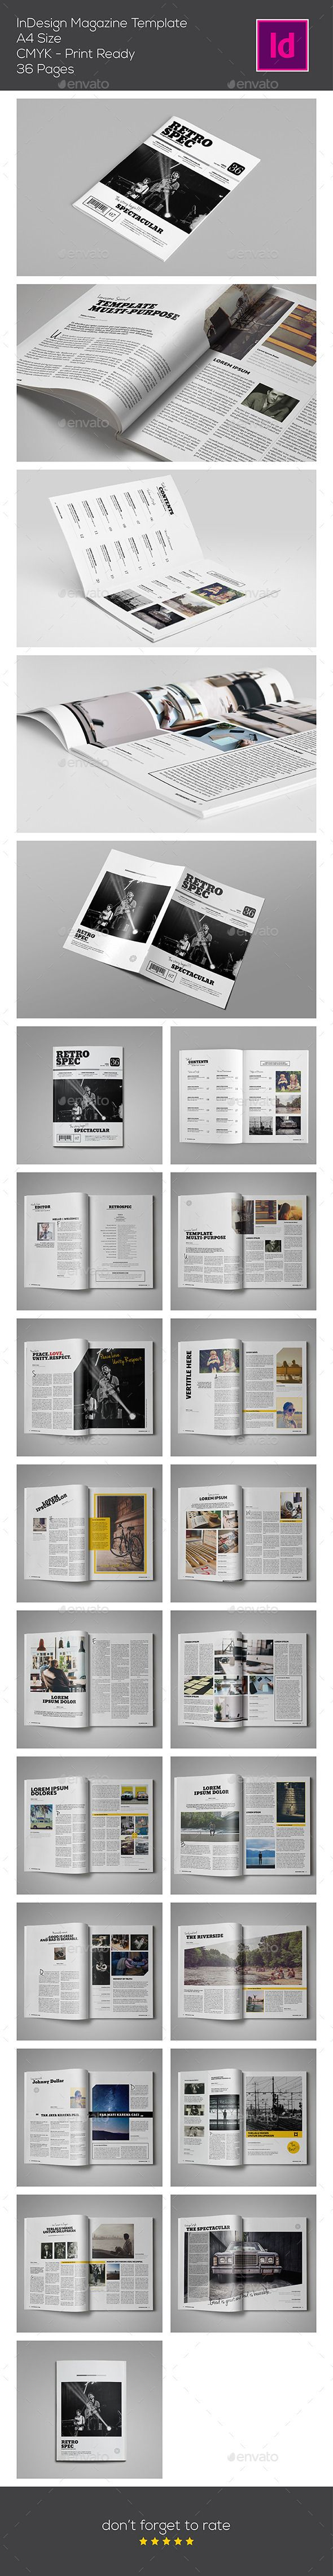 InDesign Magazine Template | #magazinetemplate | Download: http://graphicriver.net/item/indesign-magazine-template/9694359?ref=ksioks